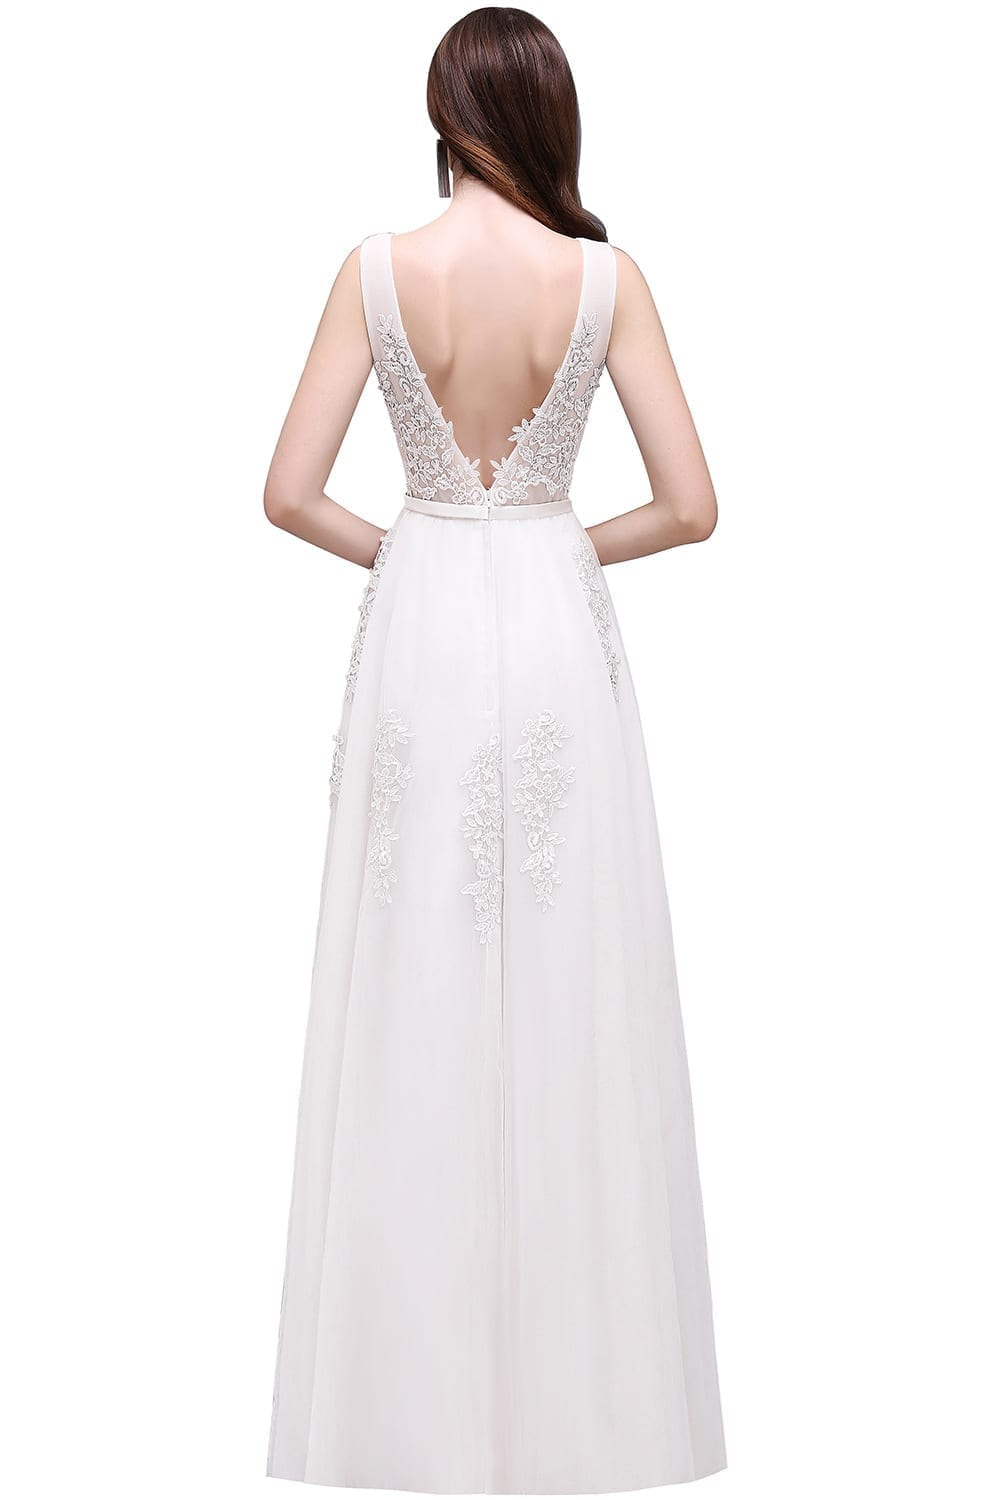 V-neck Open Back Lace Beach Bohemian Wedding Dress